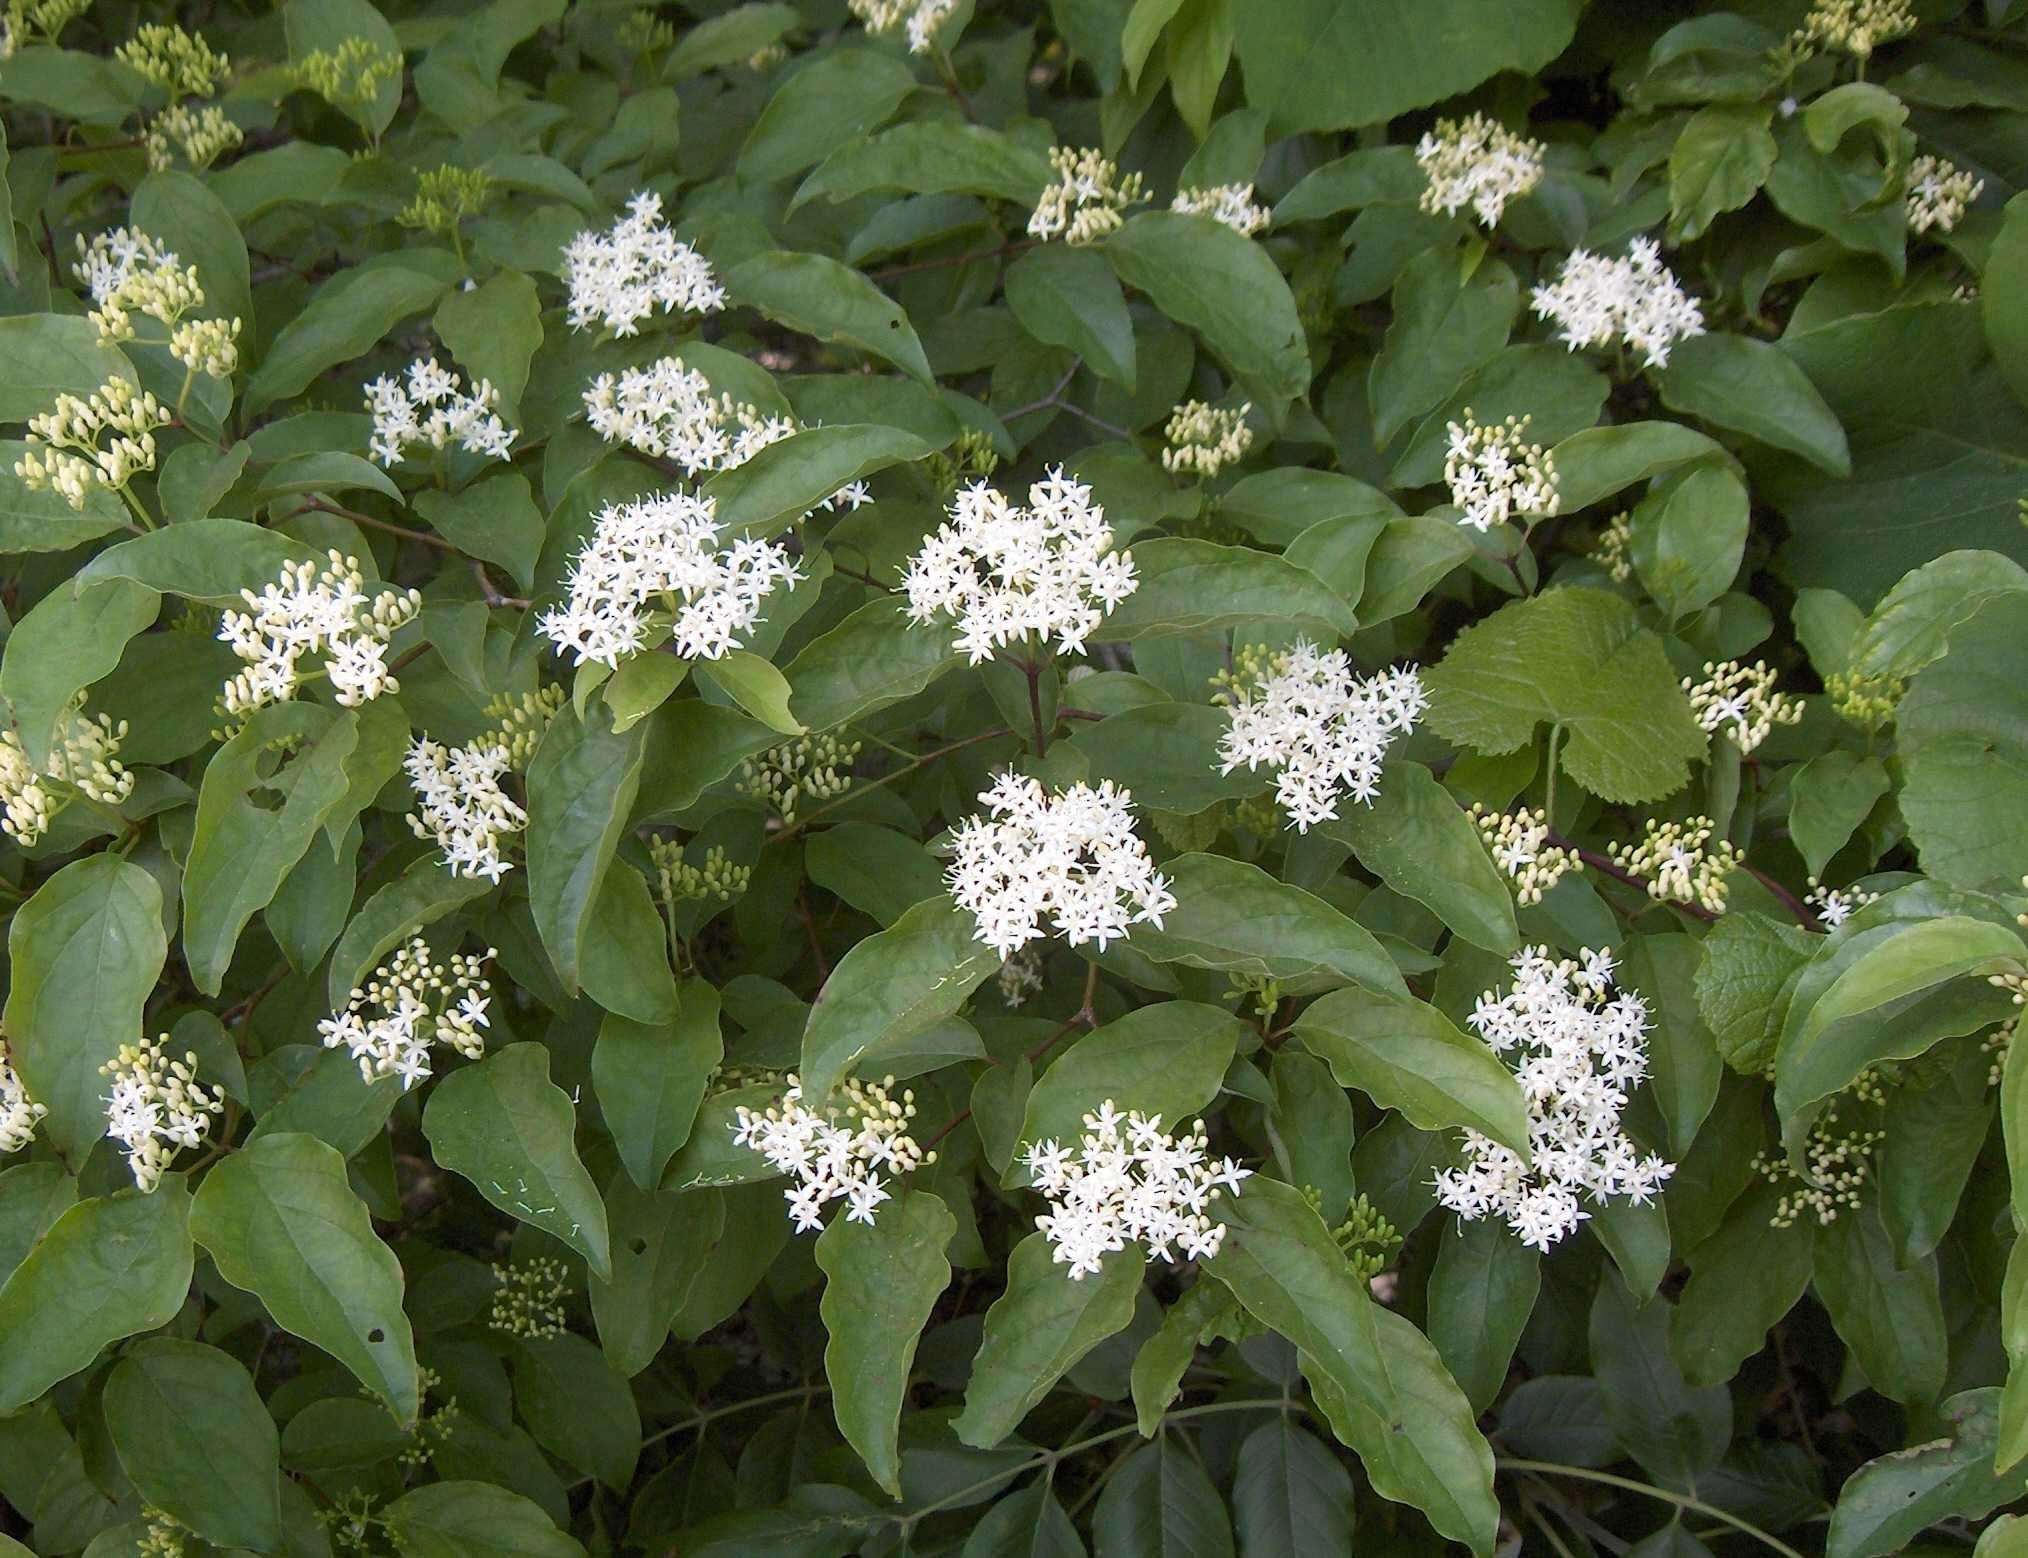 Dogwood Shrub Varieties Check out the free plant identification mobile app at GardenAnswers